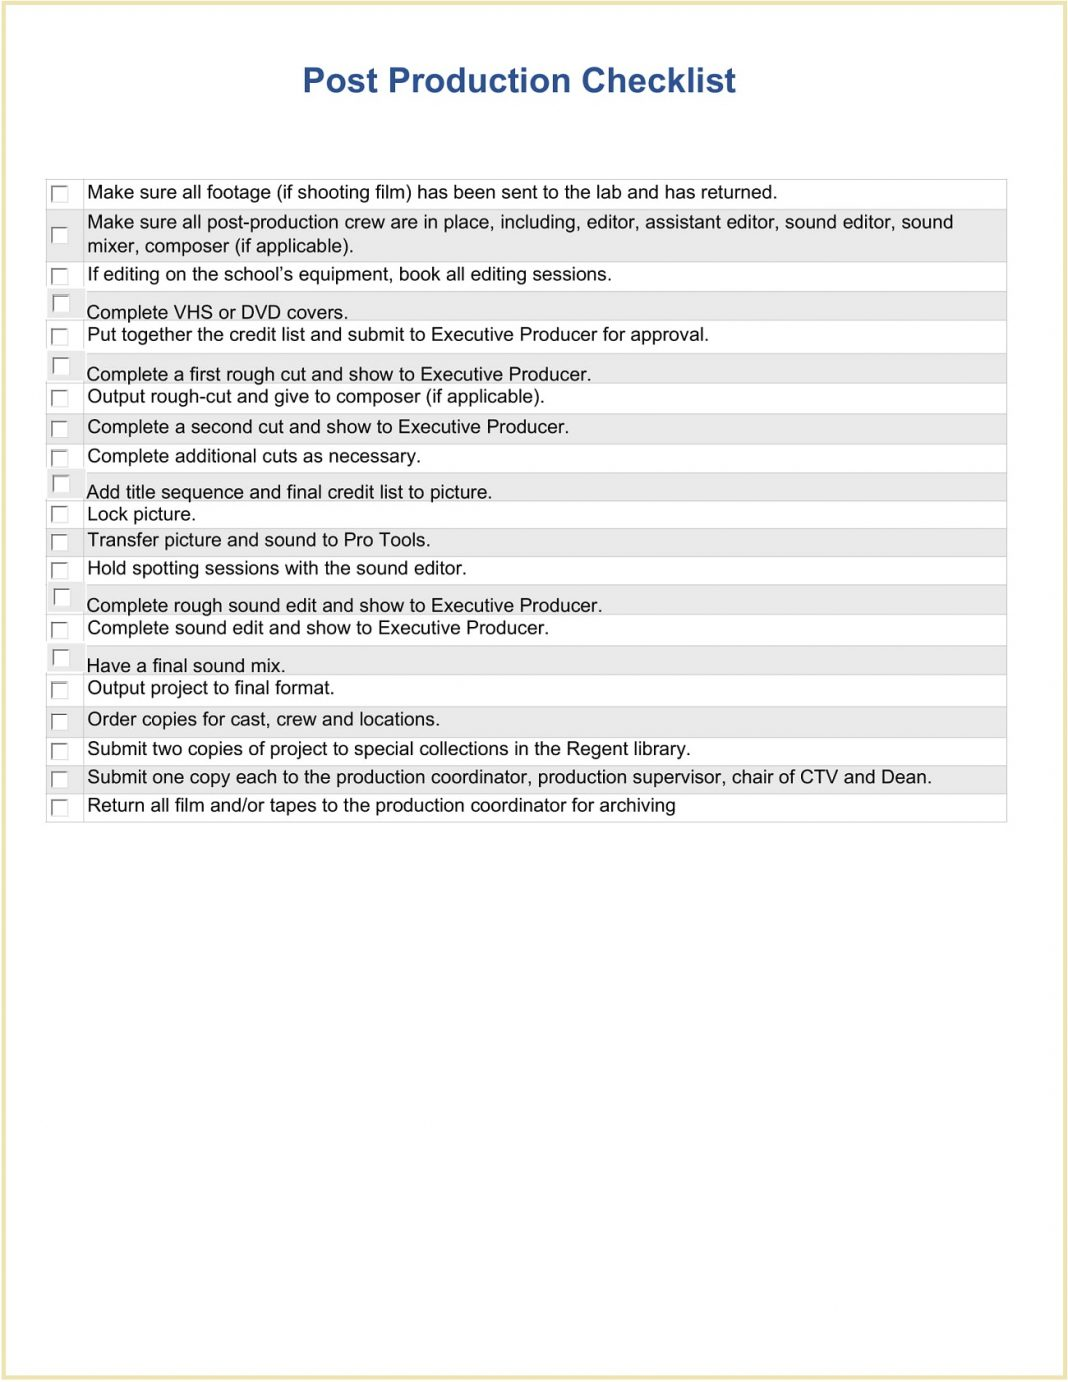 Post Production Checklist Form Sample Template Word Roles Workflow Schedule Editing For Dummies  Example Large